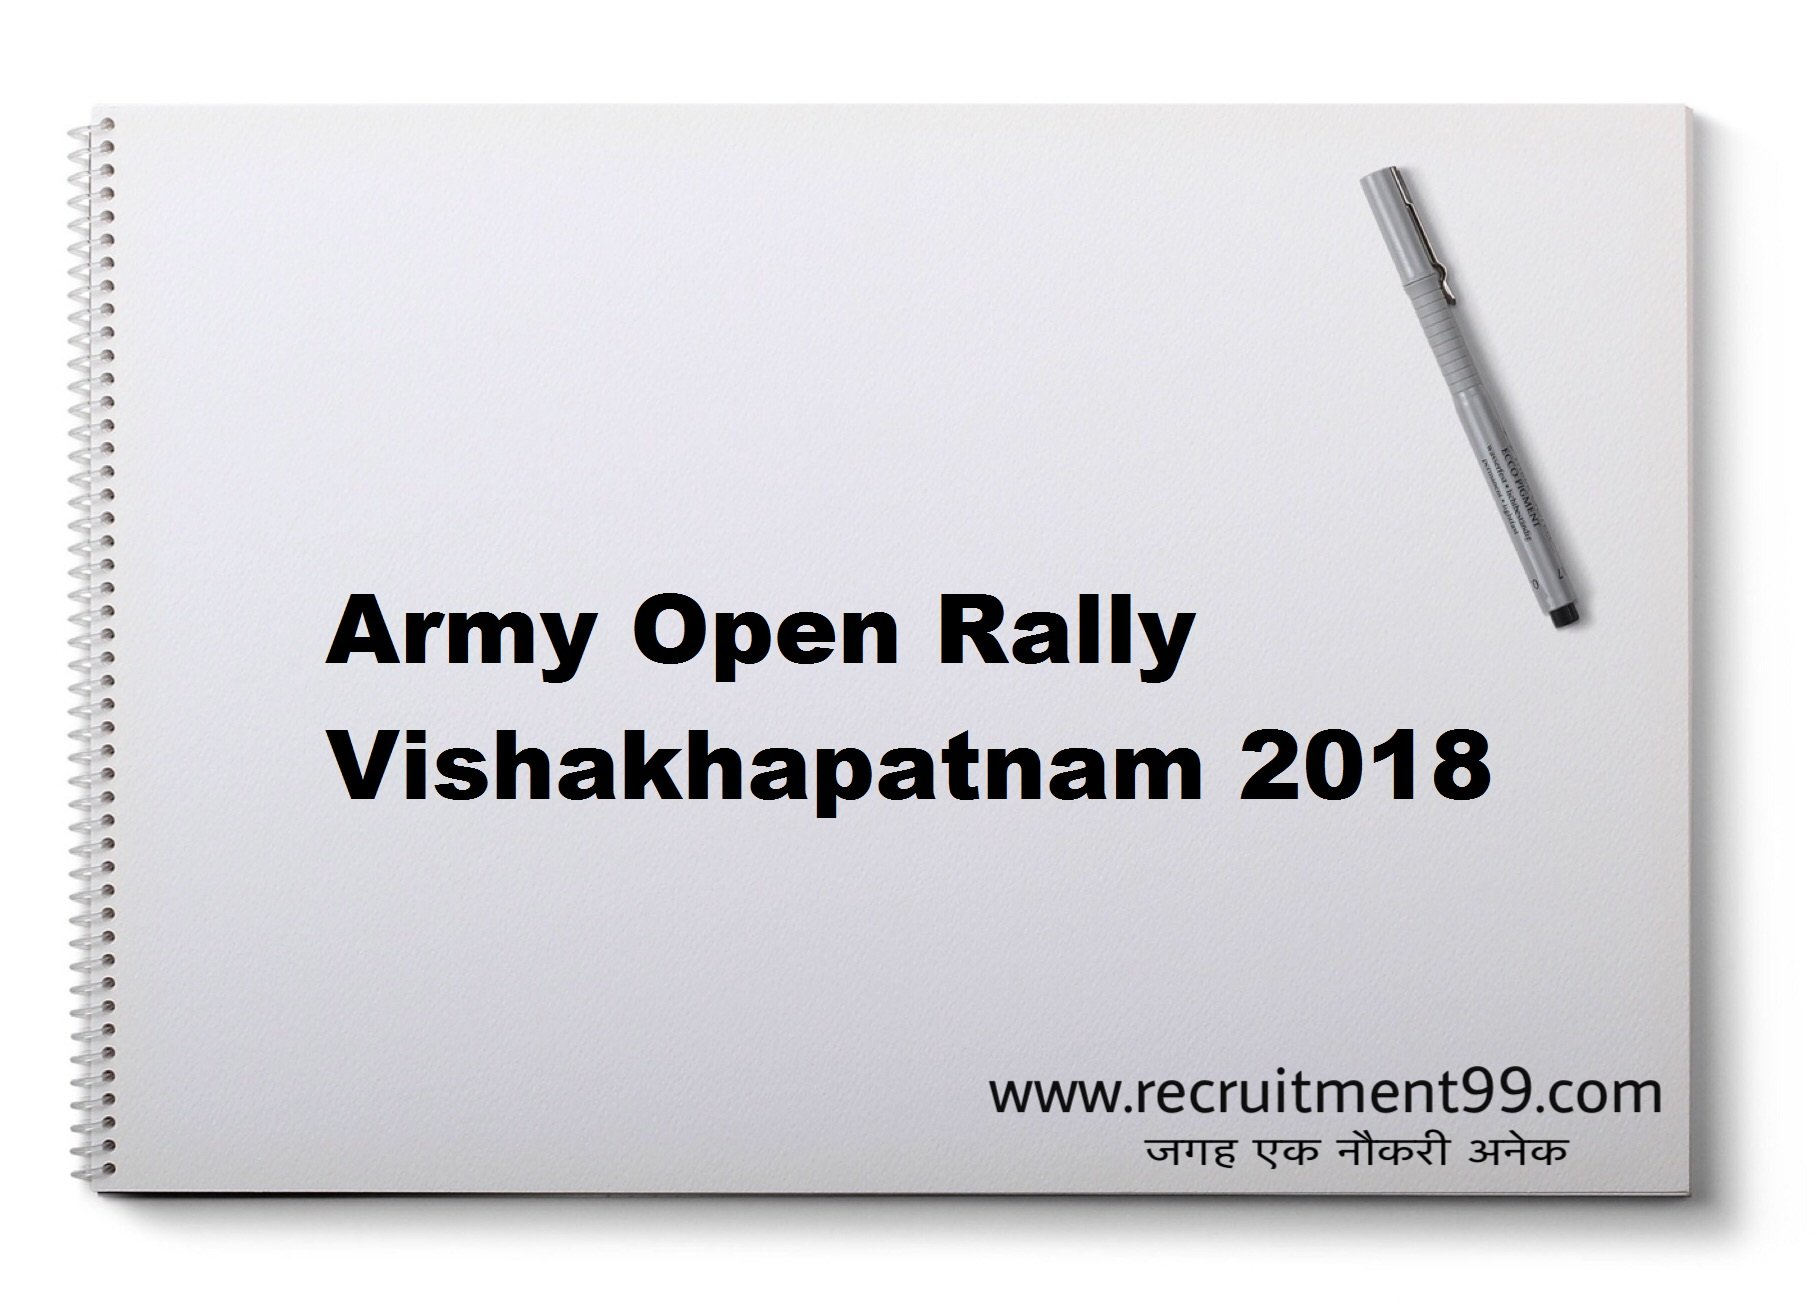 Army Open Rally Vishakhapatnam Recruitment Hall Ticket Result 2018